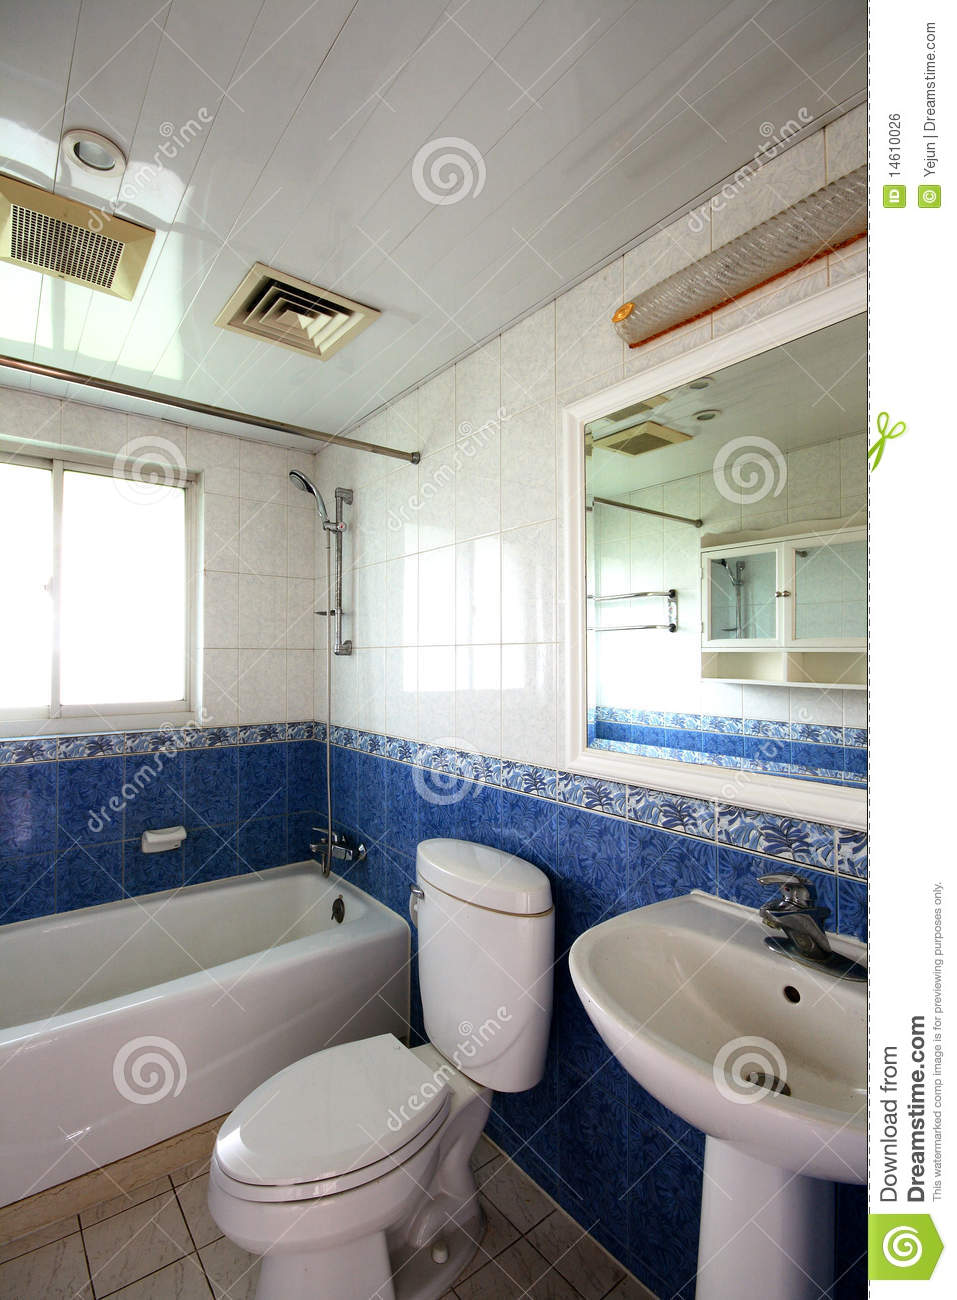 Bathroom Royalty Free Stock Image Image 14610026